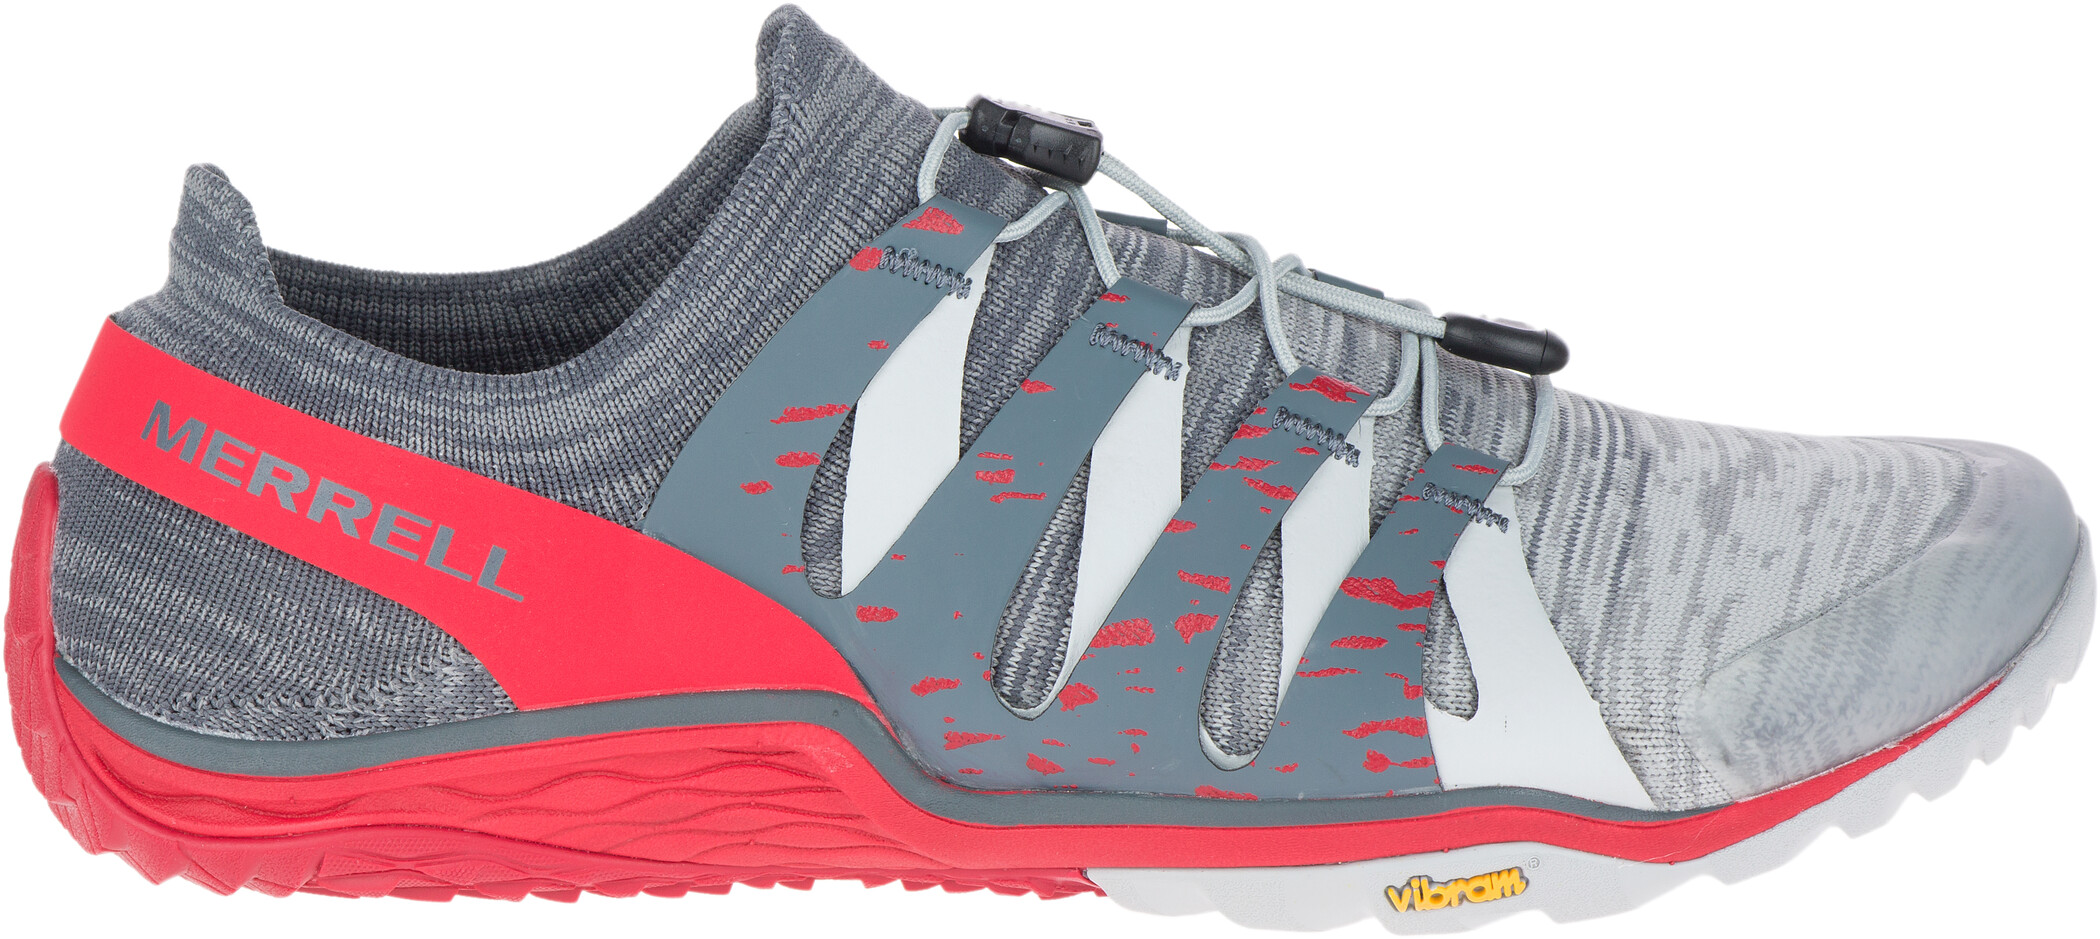 merrell trail glove 5 3d sneakers ny